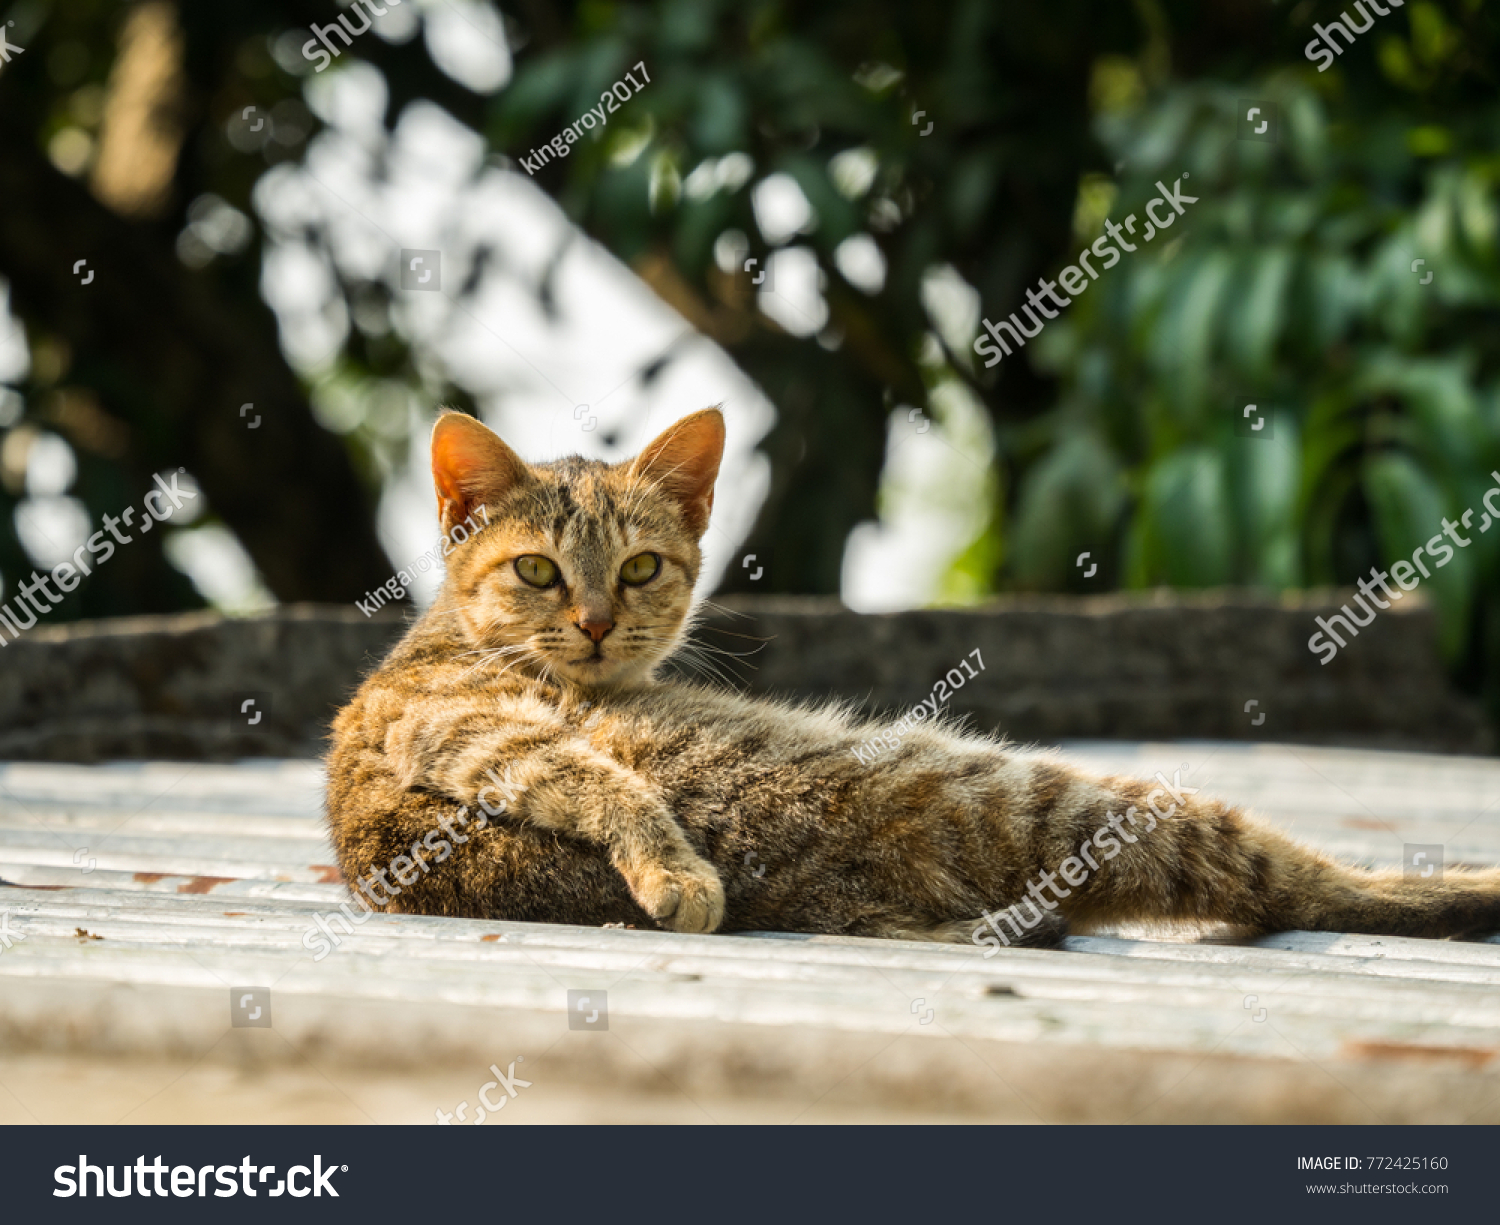 Asian Cats Cute Backgrounds Nature Stock Photo Edit Now 772425160